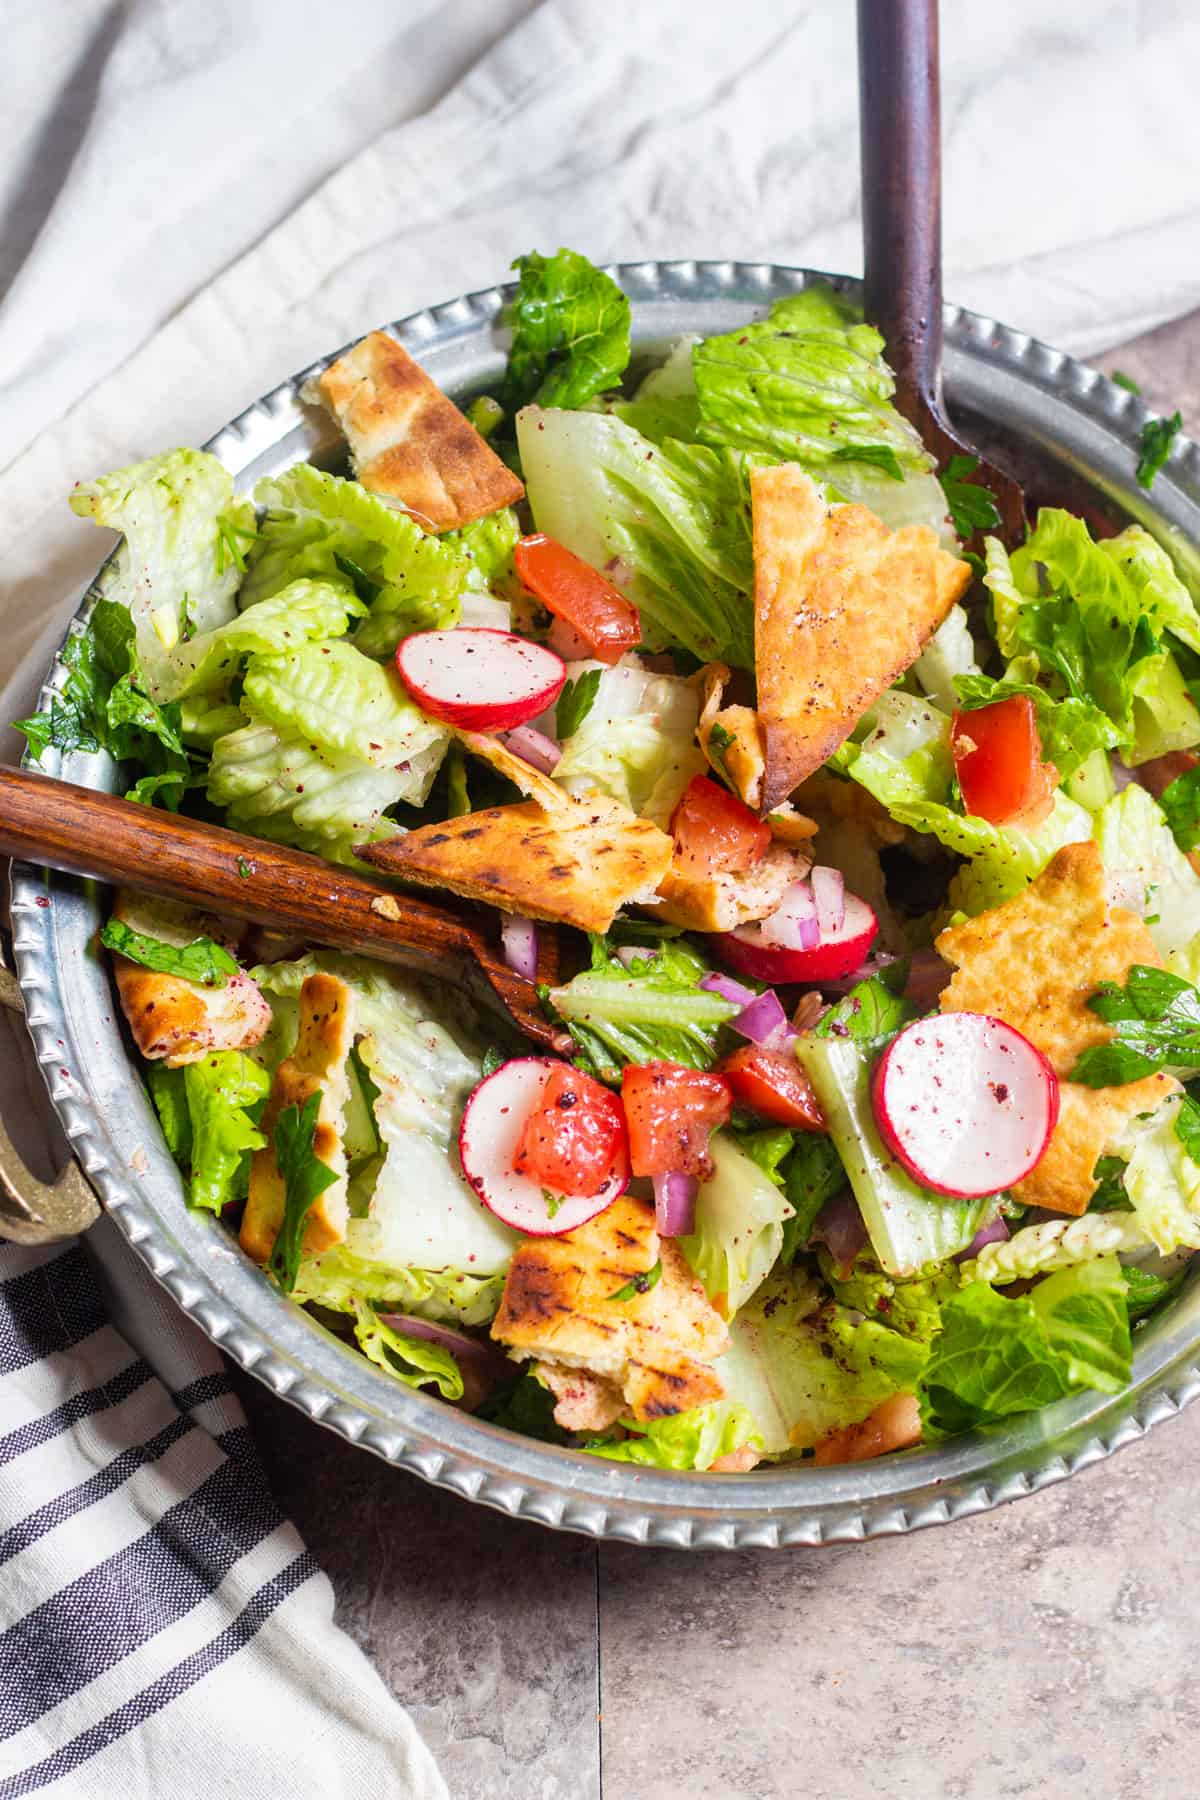 Fattoush is a simple Middle Eastern chopped salad that's perfect for any meal. This Fattoush recipe is easy to follow and uses seasonal fresh ingredients.